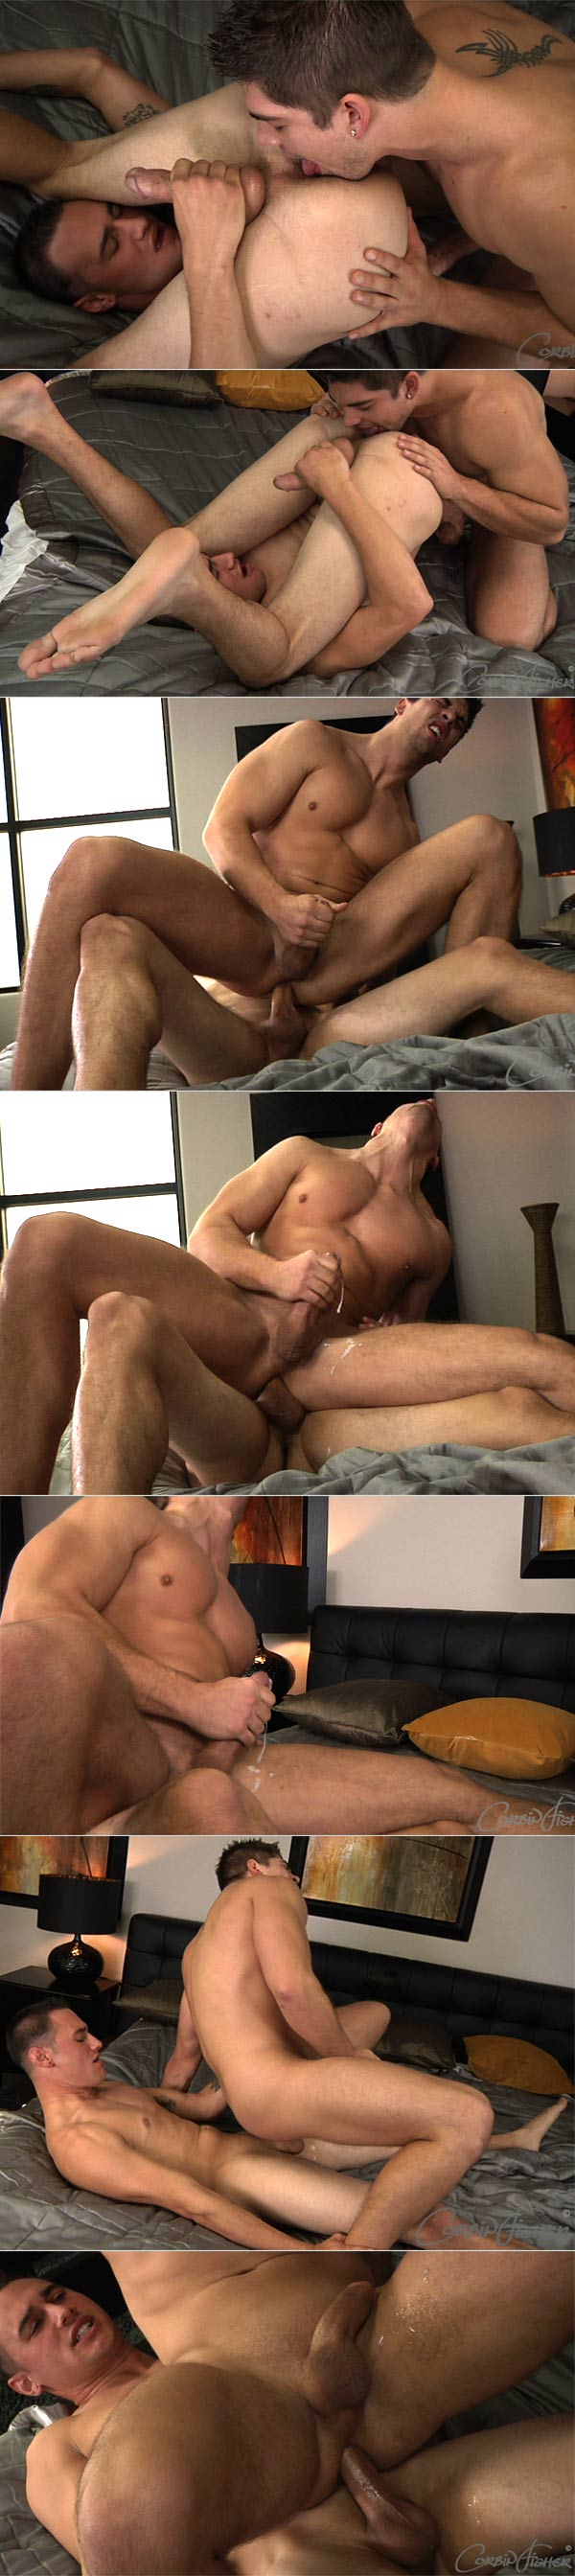 Hunter's First Time (Hunter & Aiden) (Bareback) at CorbinFisher